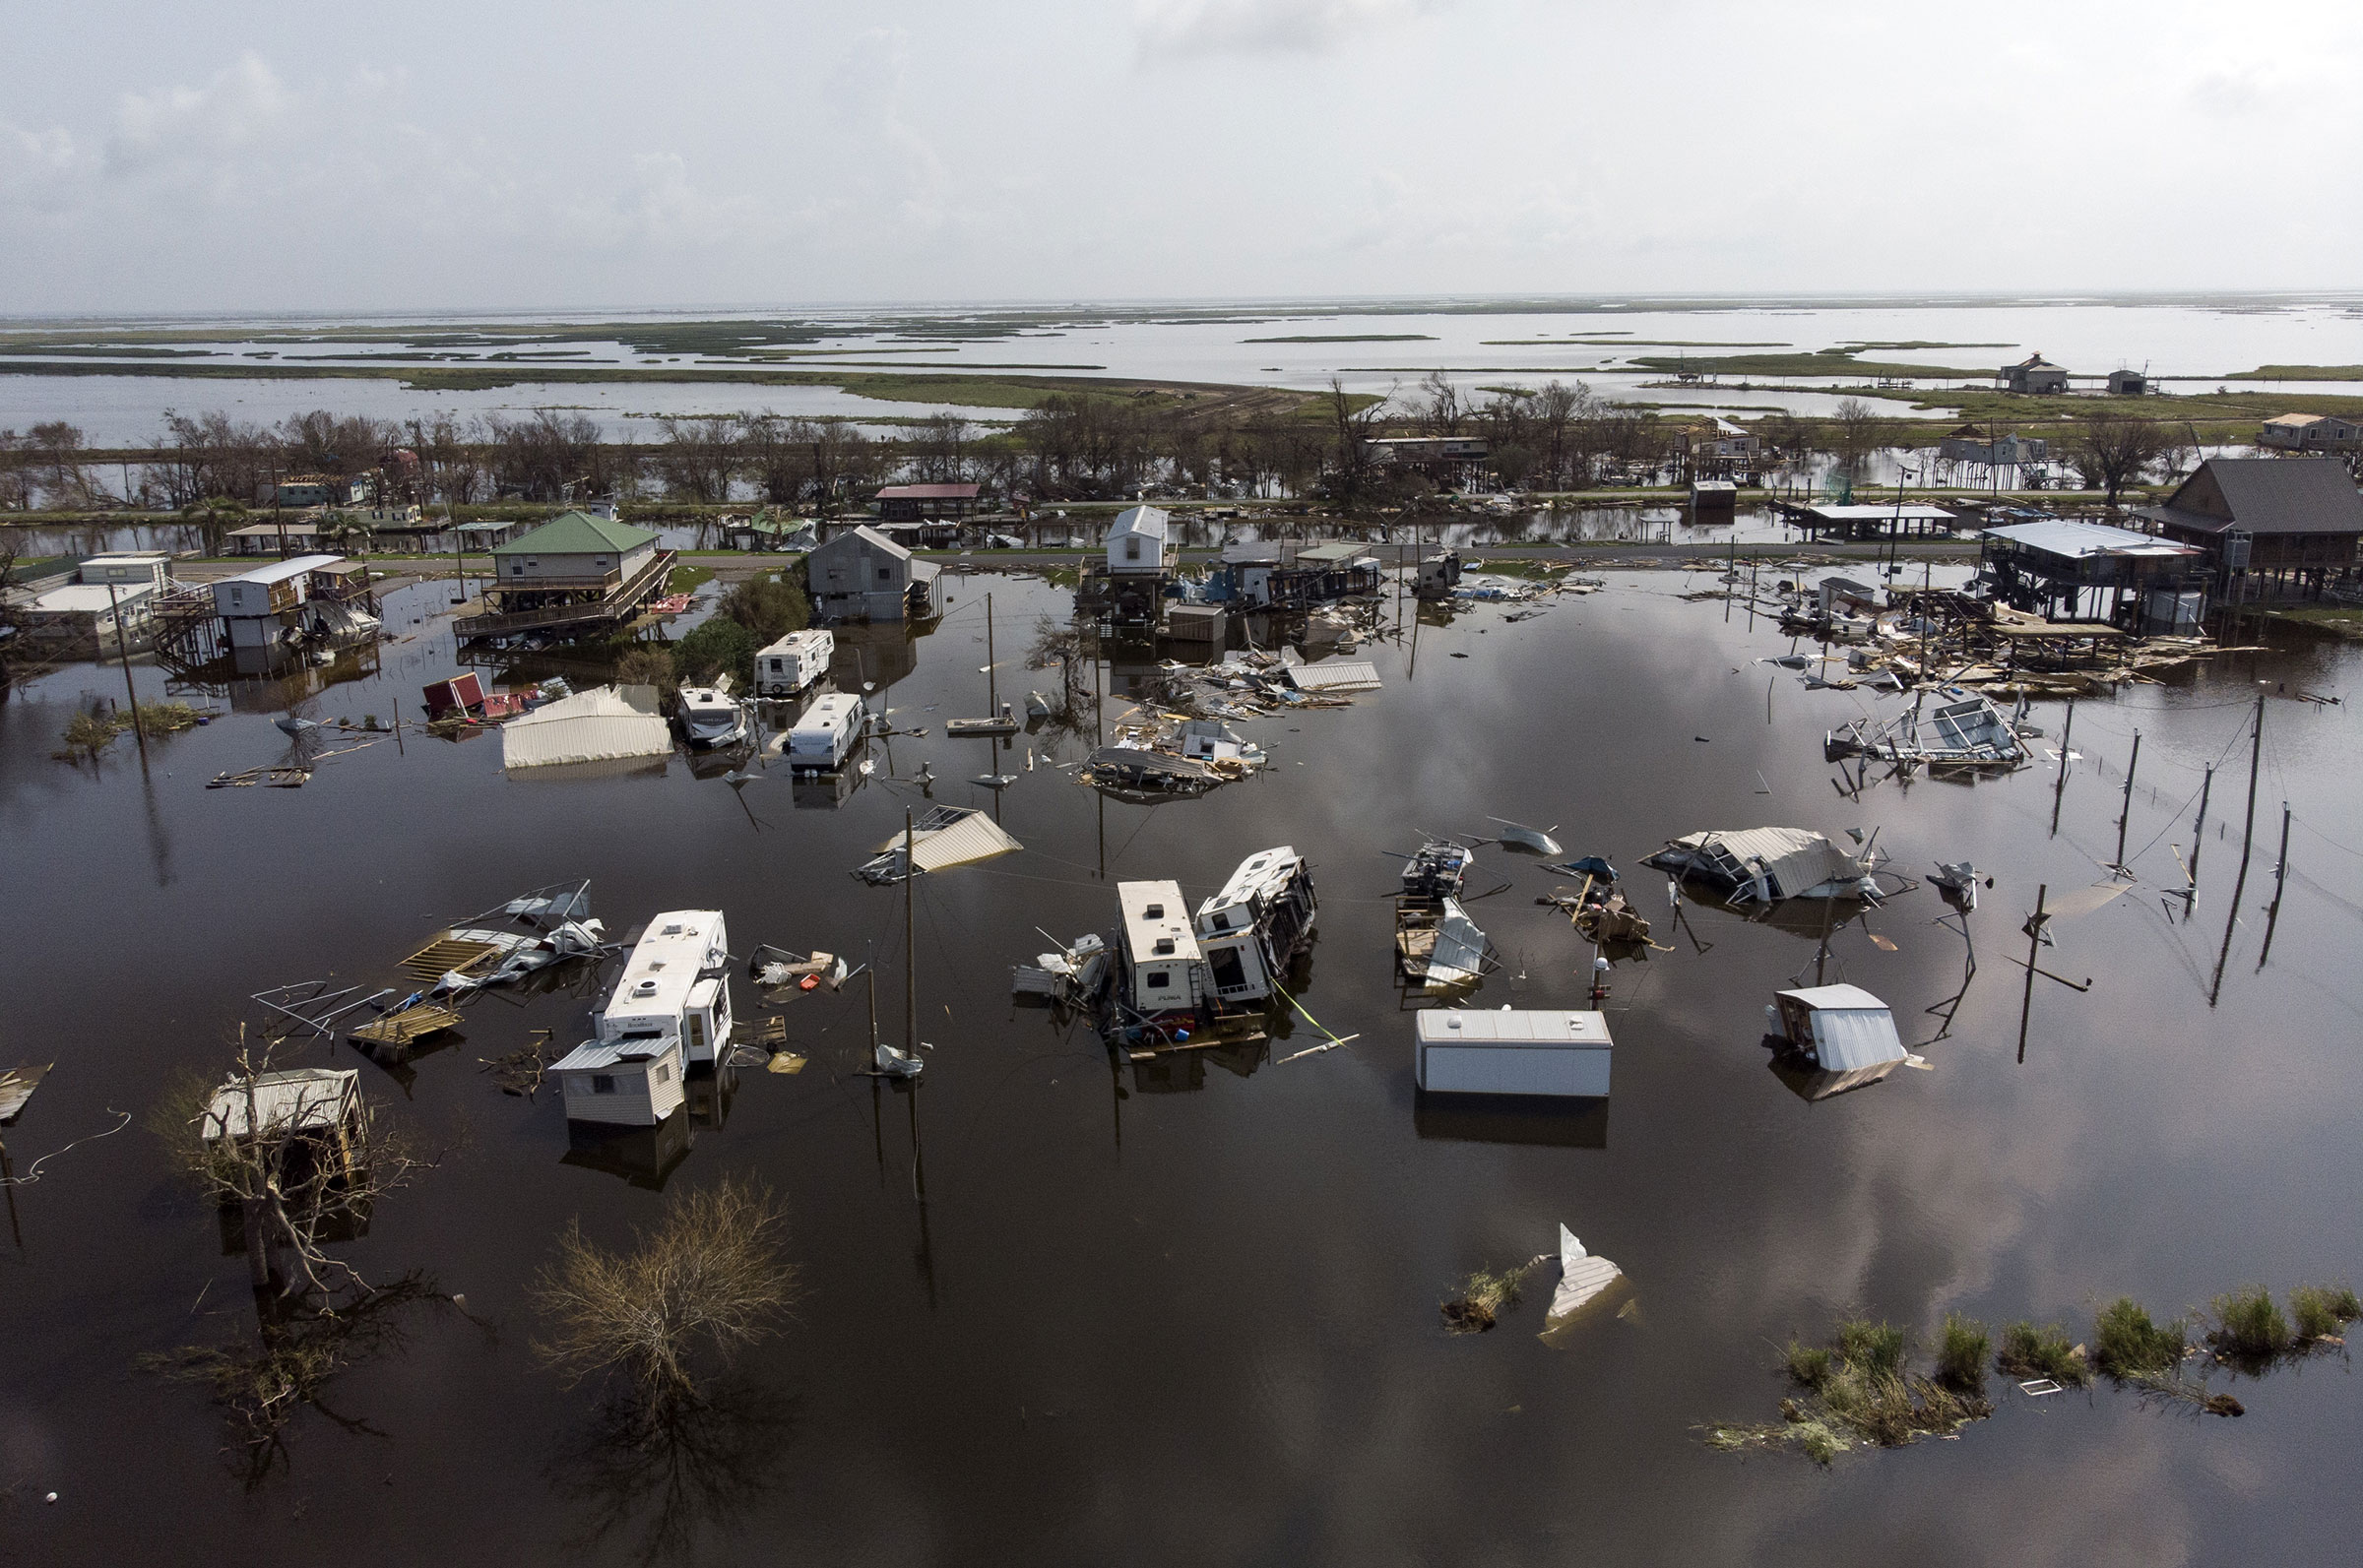 Damaged homes in floodwater after Hurricane Ida in Pointe-Aux-Chenes, Louisiana, U.S., on Thursday, Sept. 2, 2021.